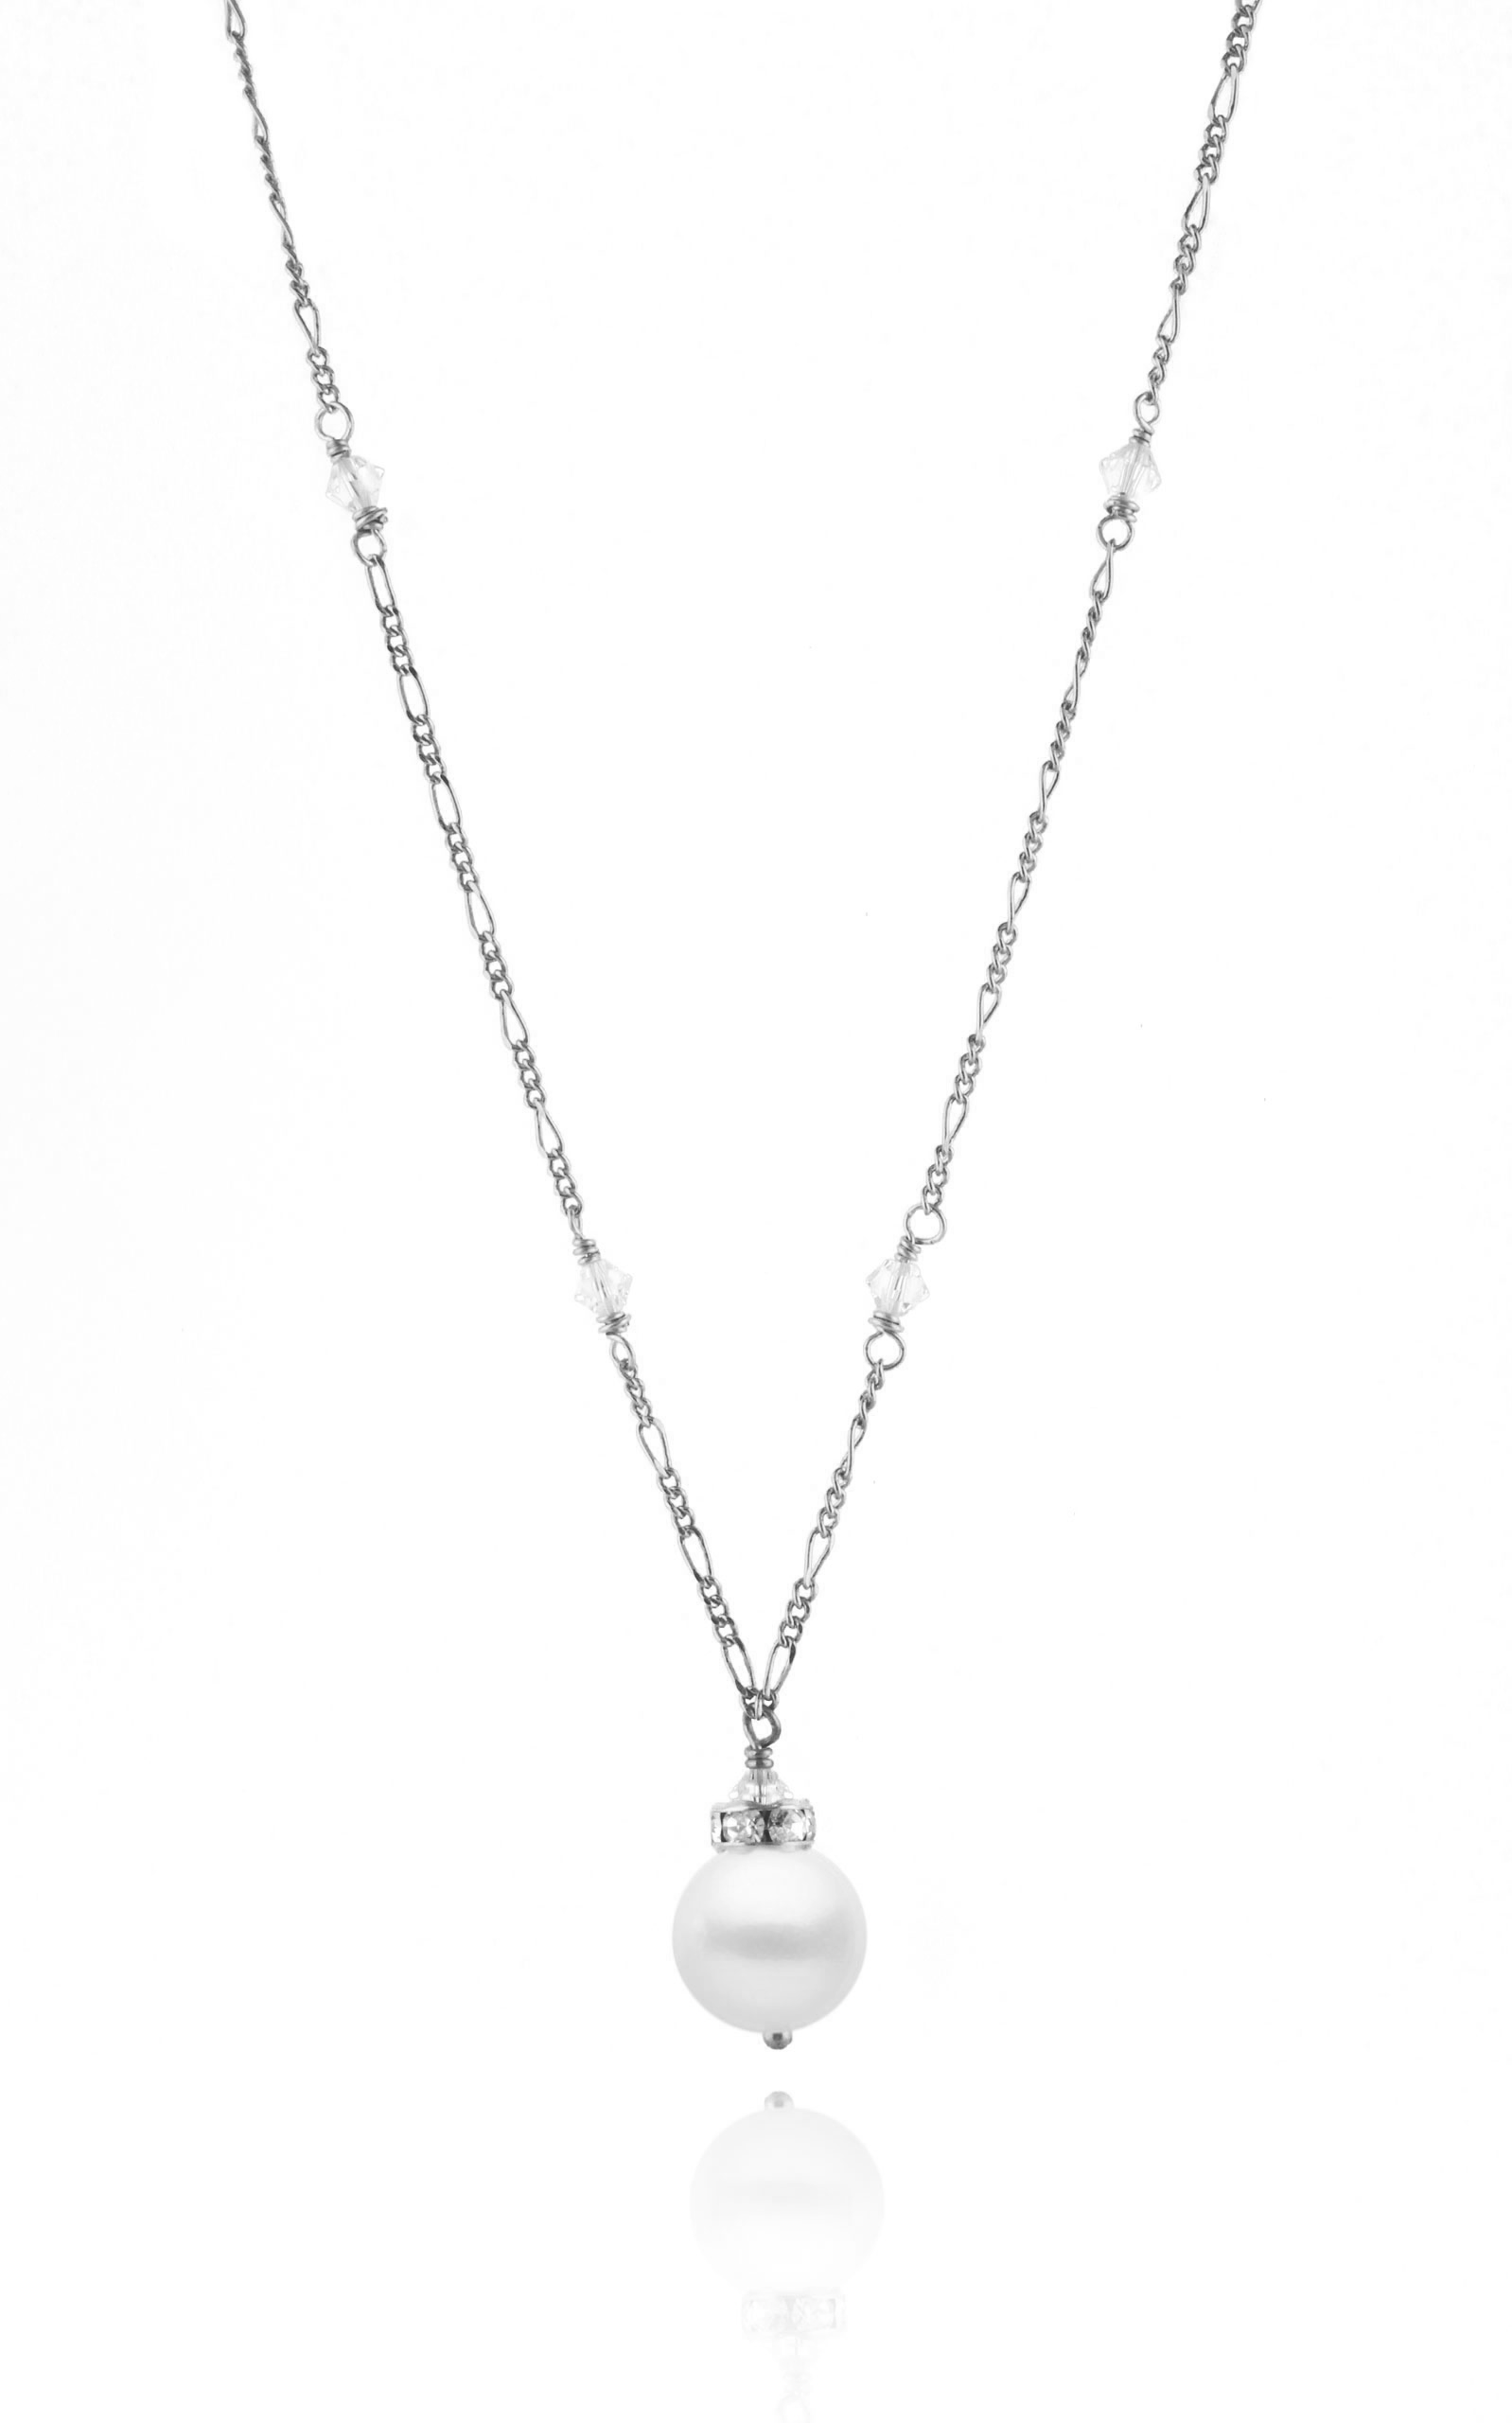 The Eloise Necklace Necklaces Bekah Anne Accessories Rhodium/Sterling Silver 10-11mm 17-18""